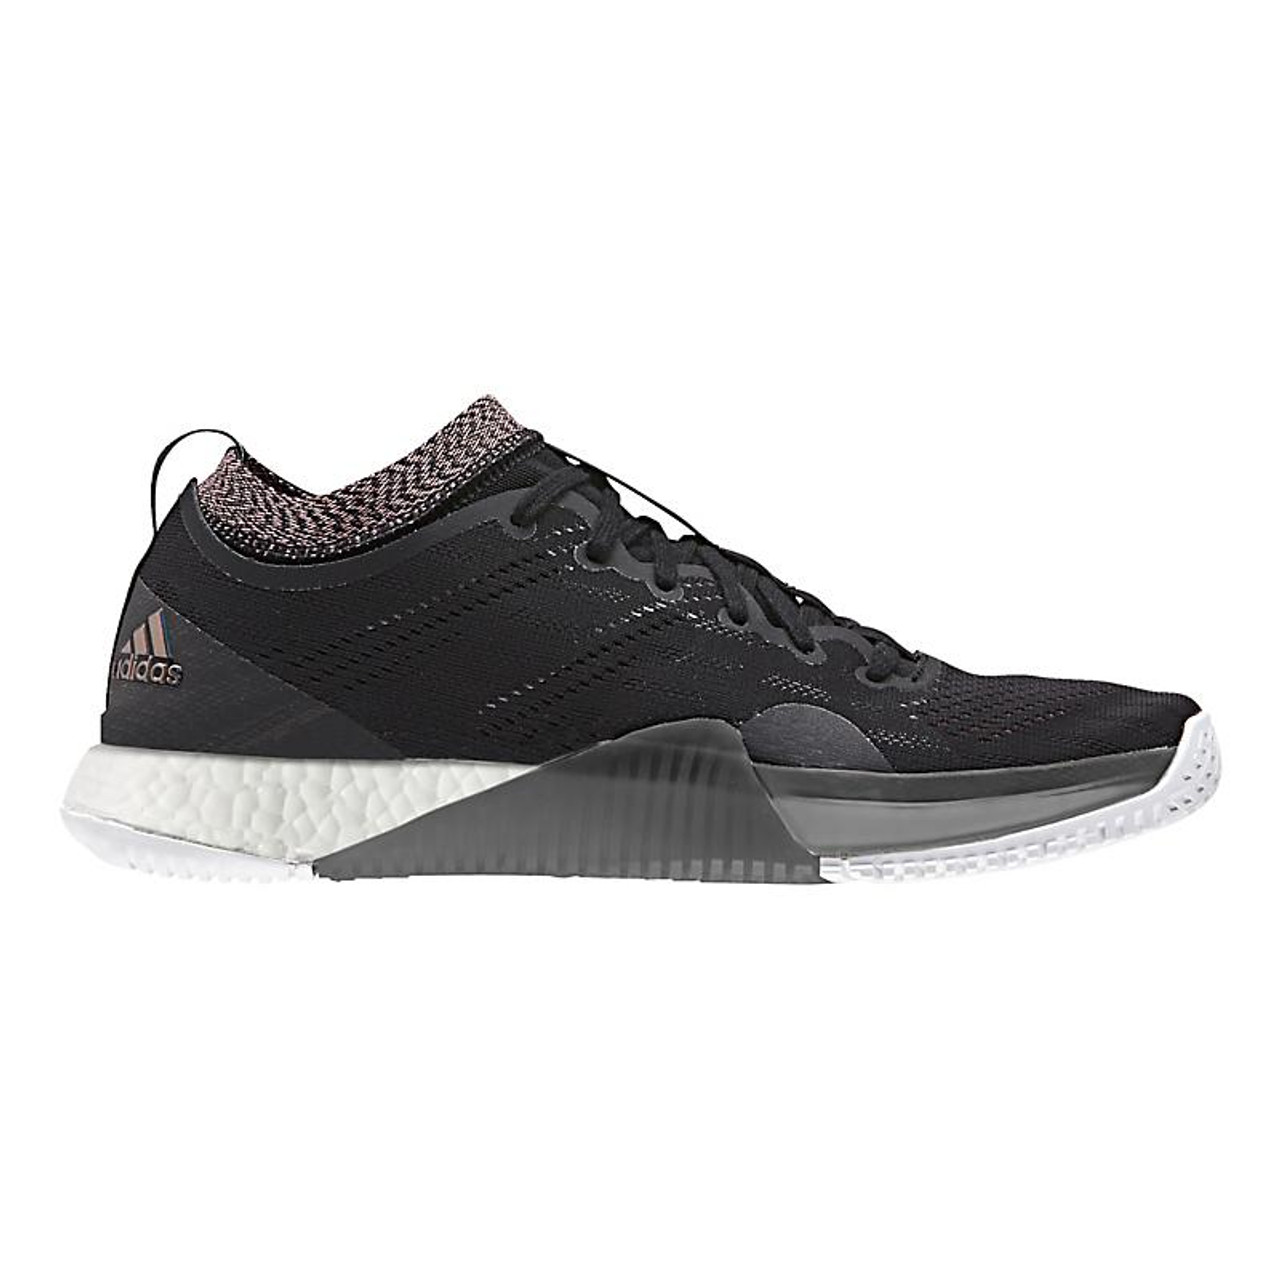 Women Adidas CRAZYTRAIN ELITE Womens Cross Training Shoes Black Rose Sneakers